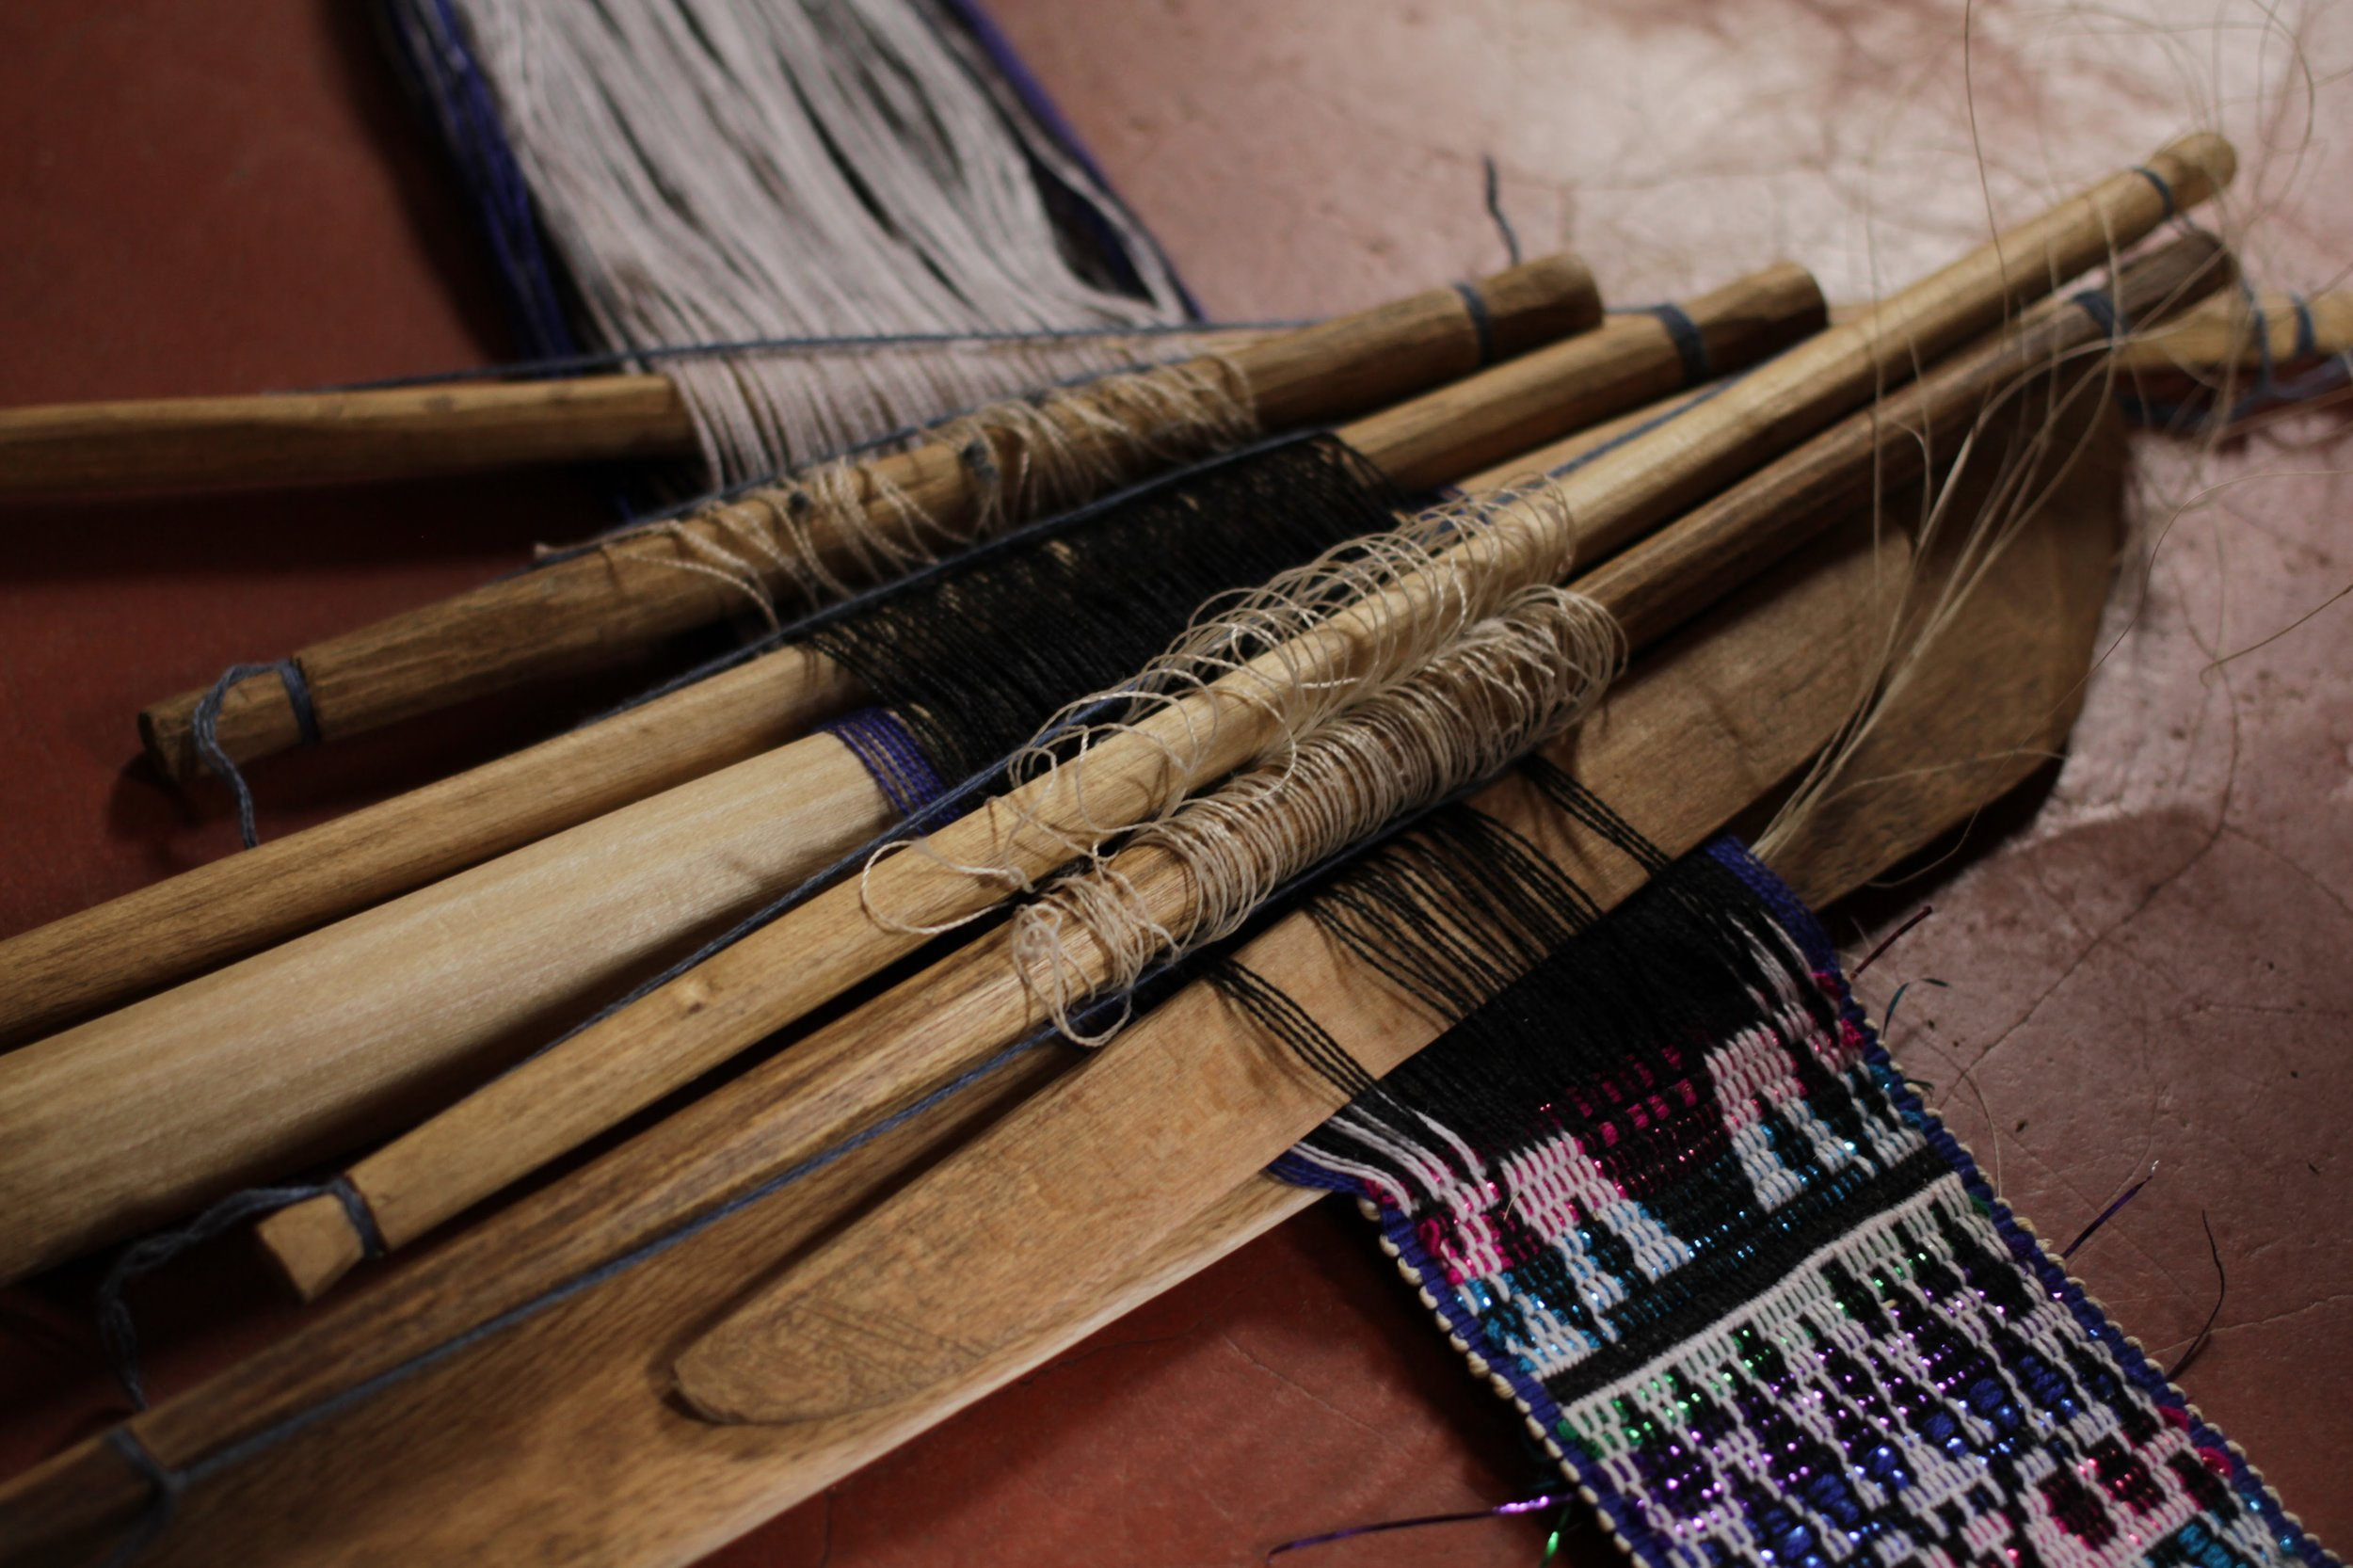 Finally they are ready to weave! The artisan will decide what patterns she wants to create, and will choose the appropriate number of rods to support it.   The greater the number of rods, the more complex the design.